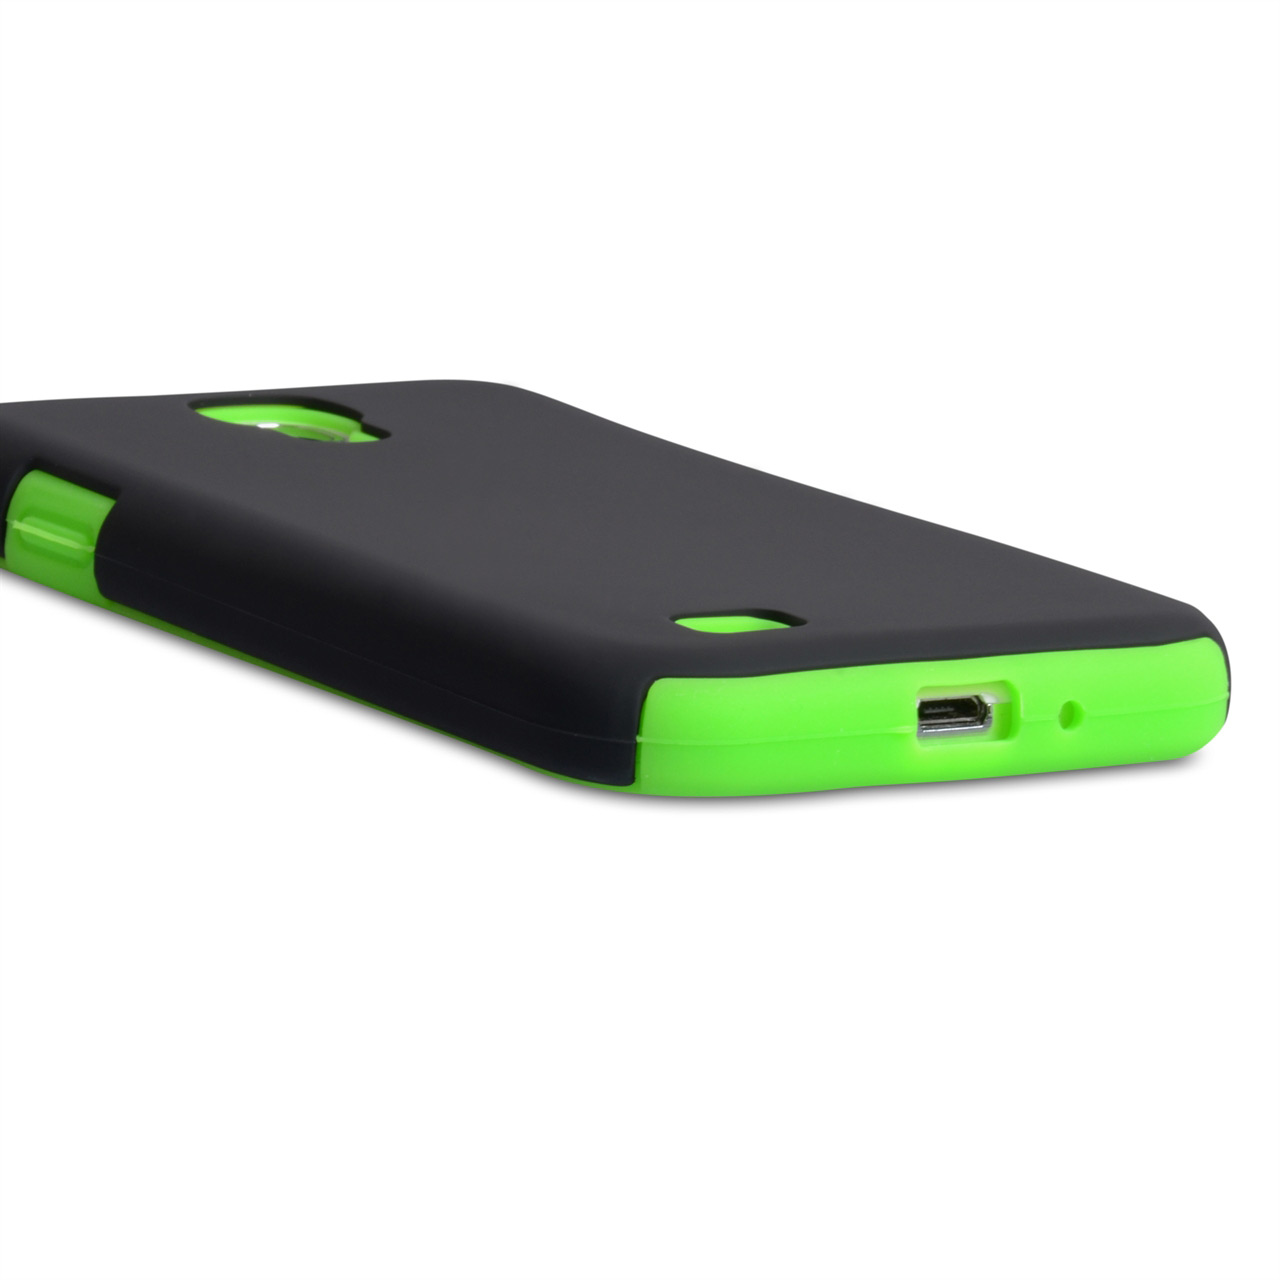 YouSave Accessories Samsung Galaxy S4 Hybrid Combo Case - Green